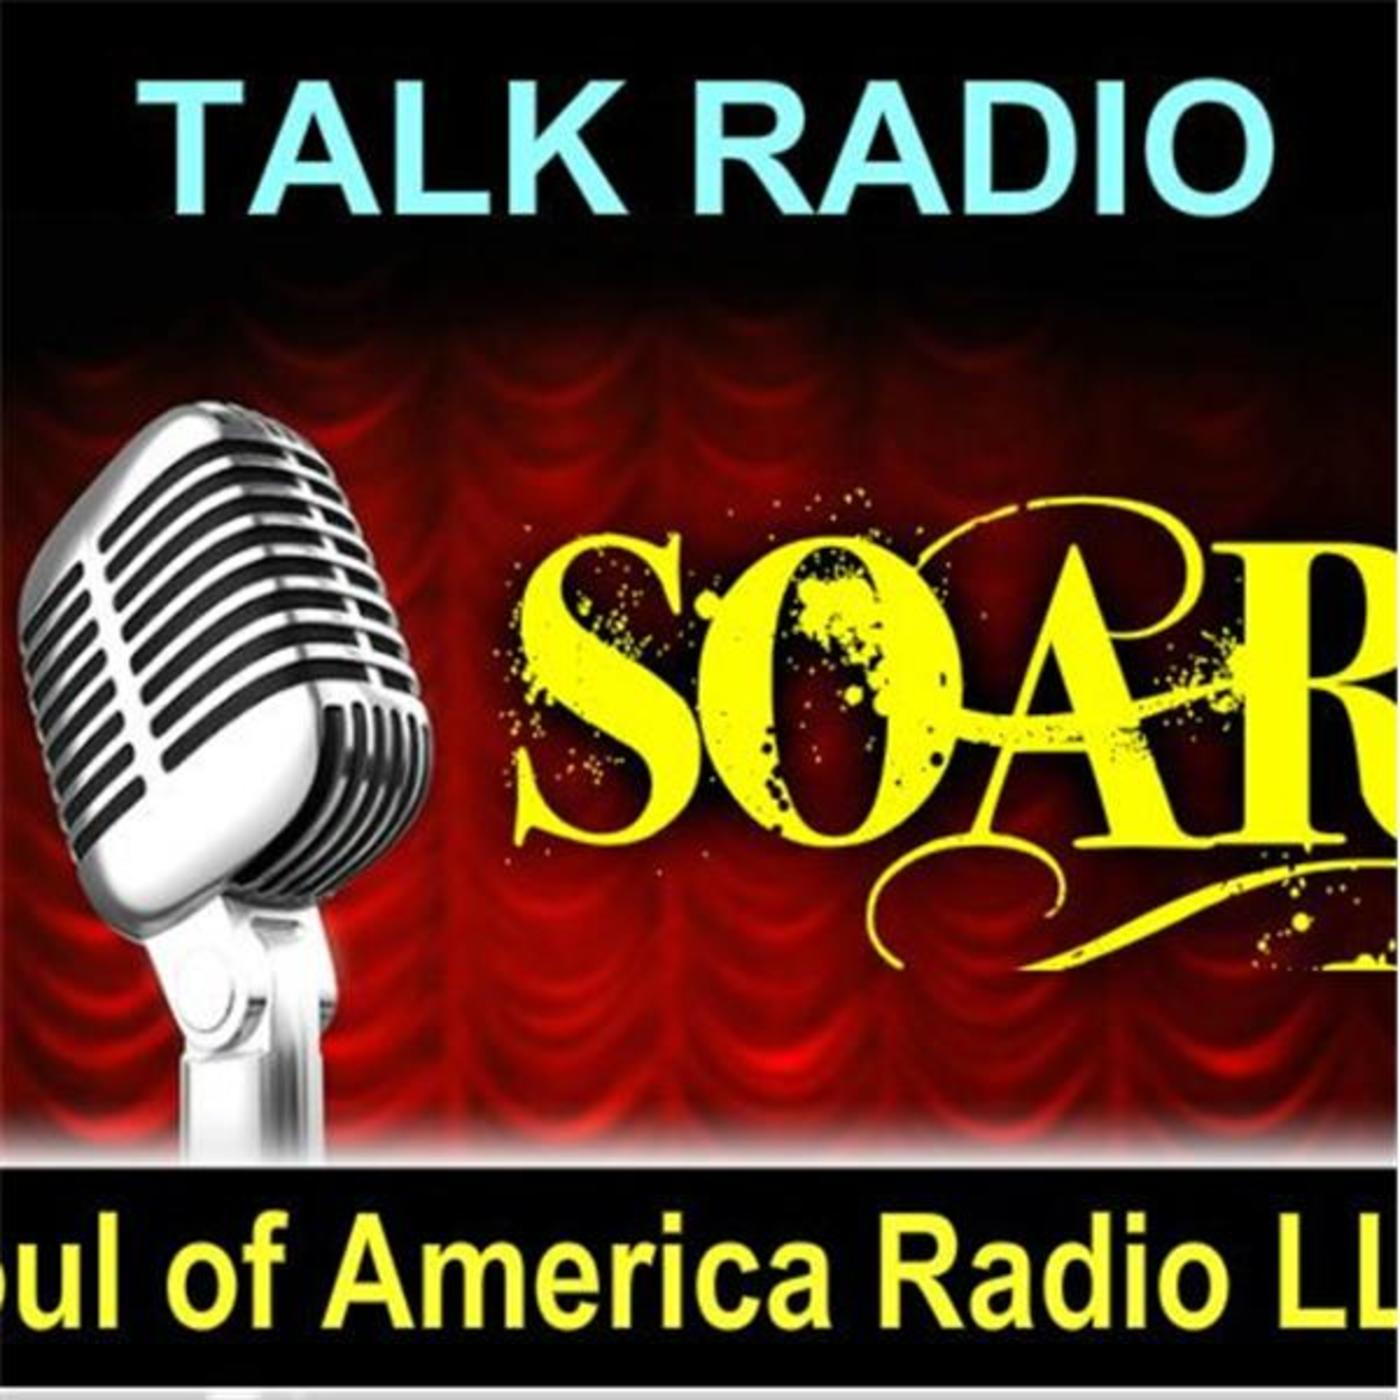 Soul of America Radio LLC